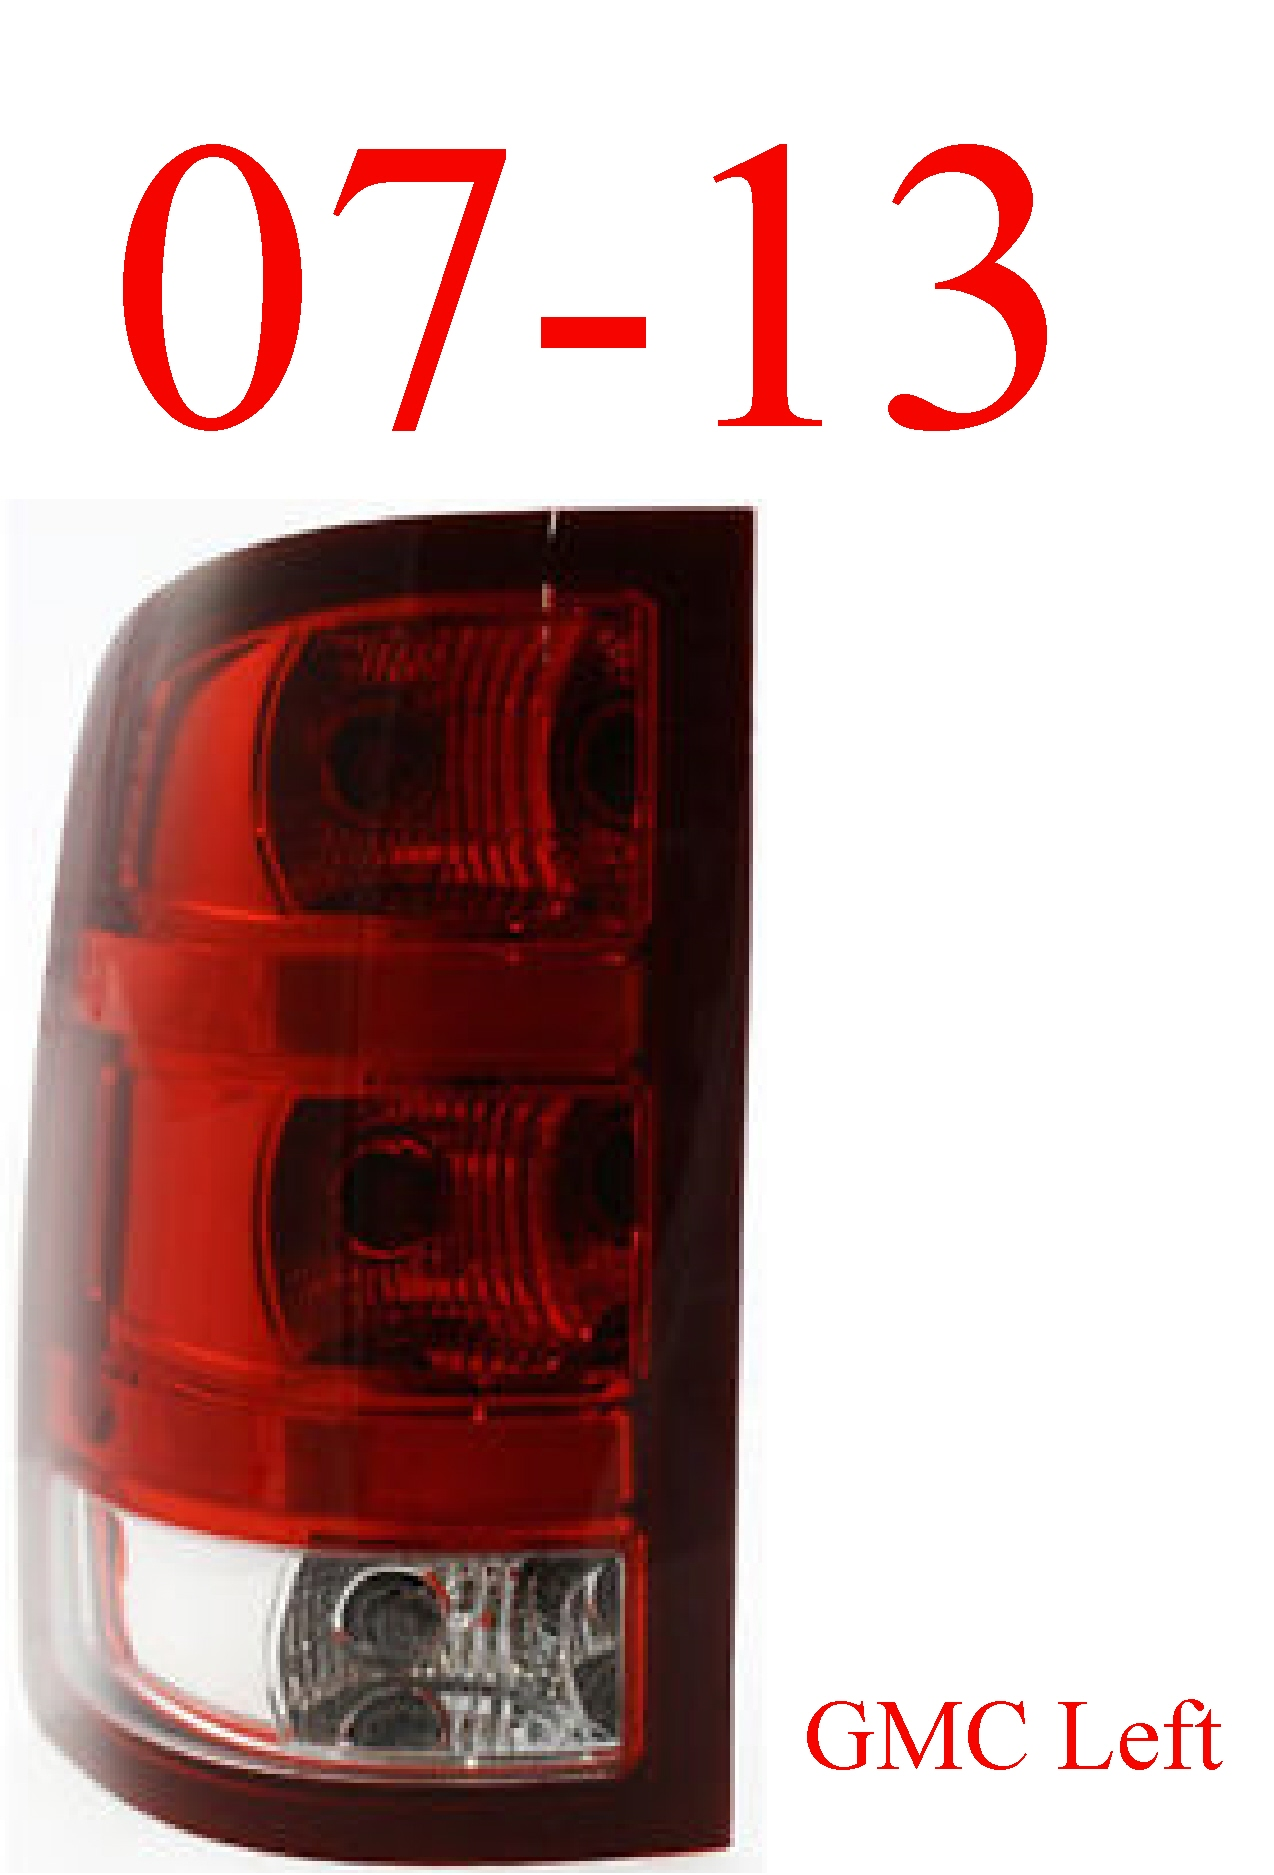 07-13 GMC Left Tail Light 1st Design